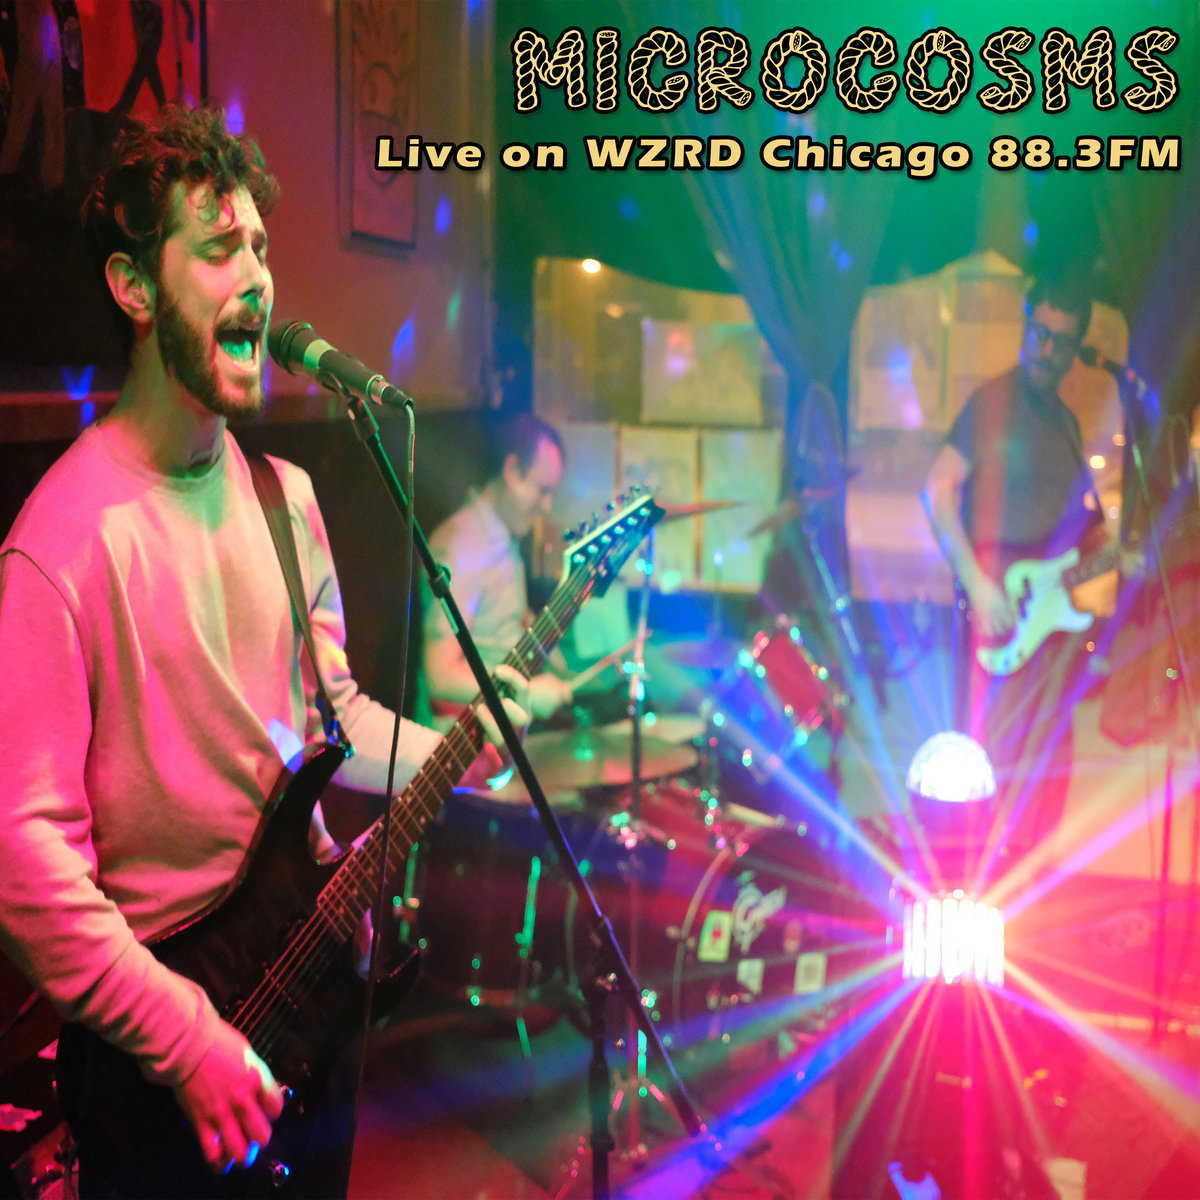 www.facebook.com/wearemicrocosms